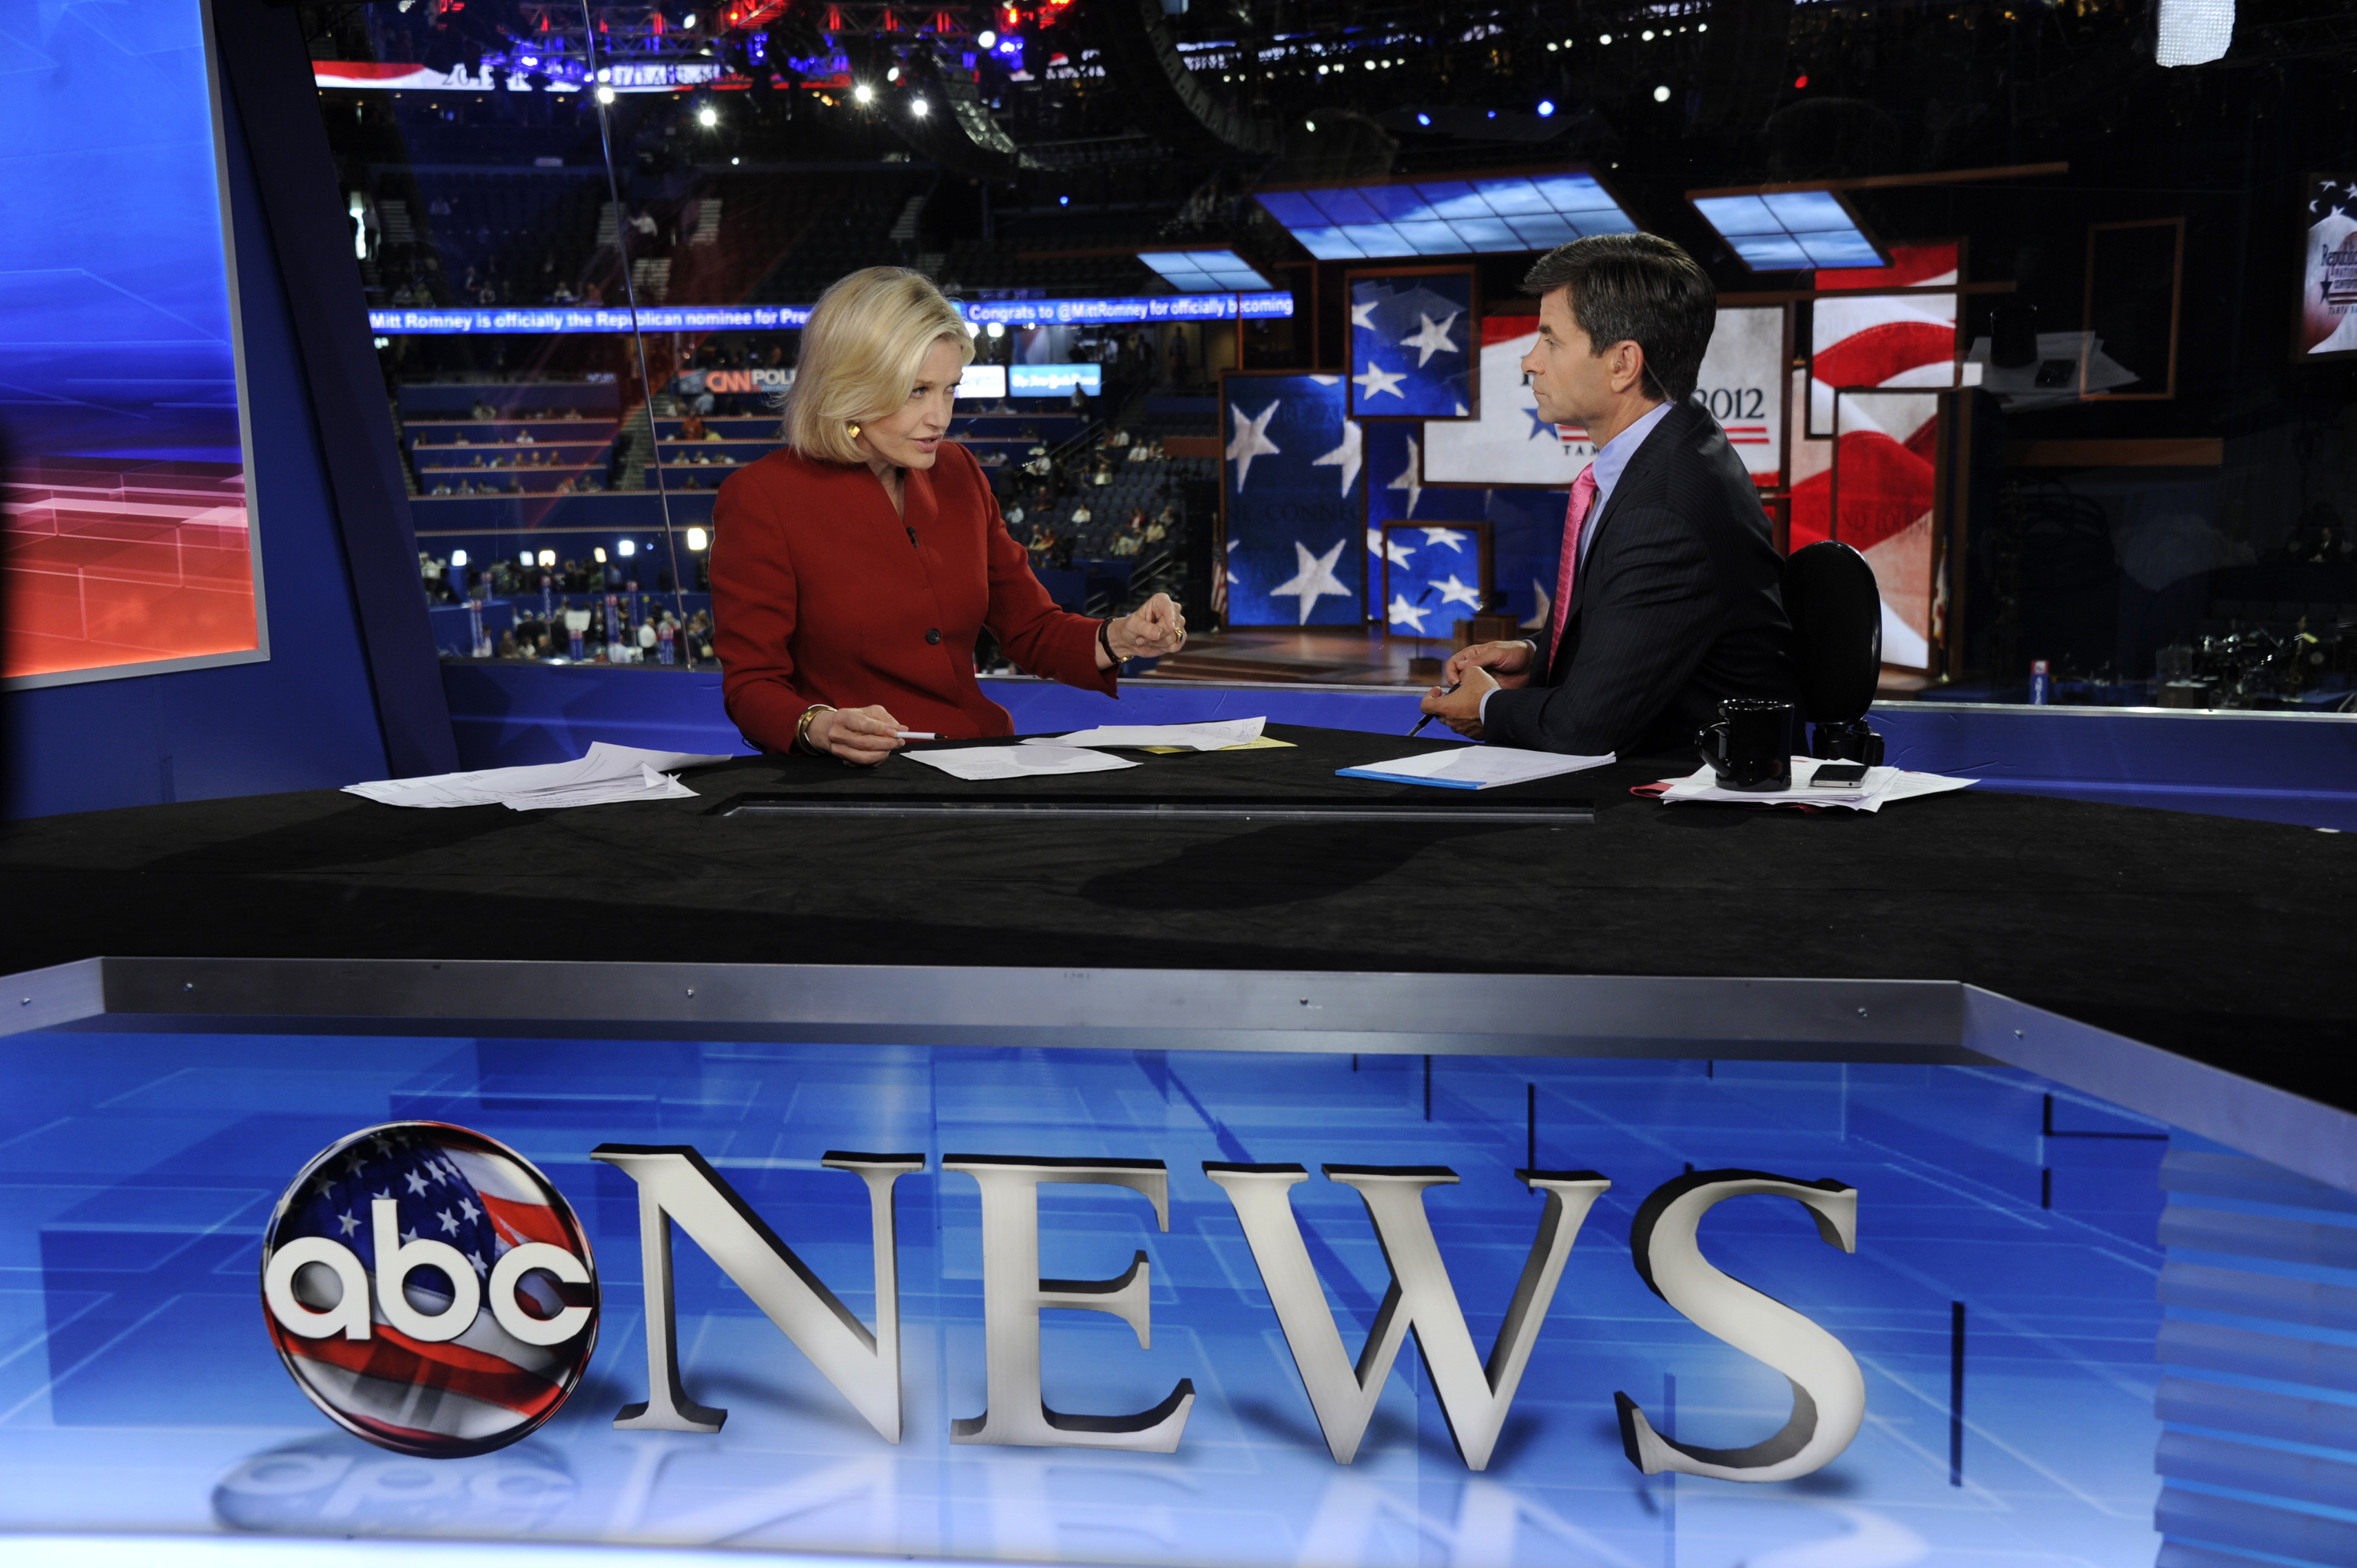 ABC's Coverage Of The 2012 Republican National Convention